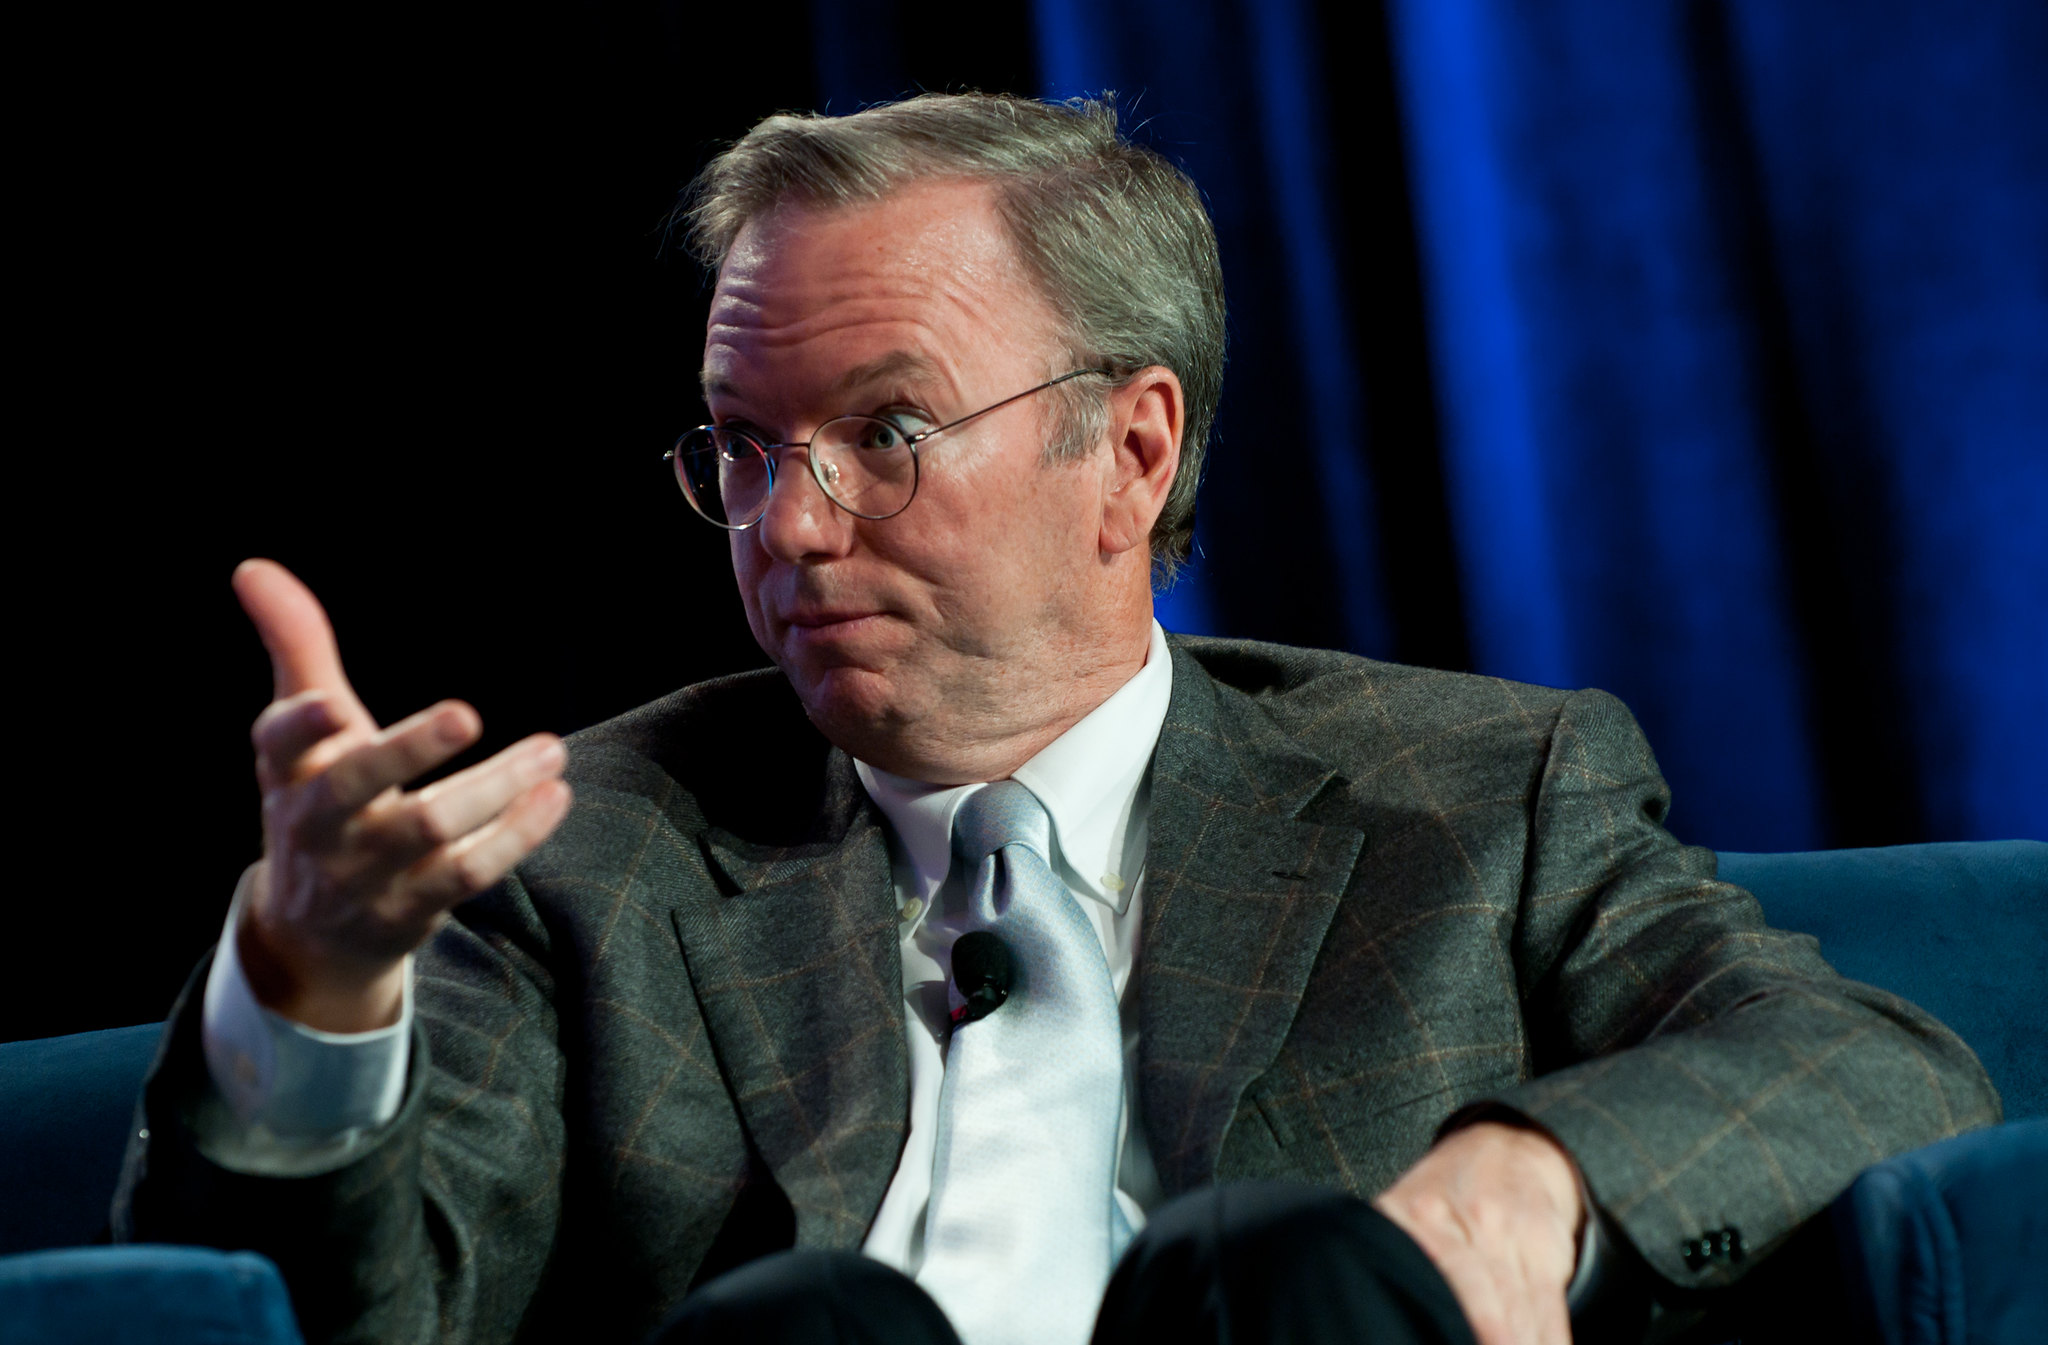 Image of article 'Eric Schmidt bows out of Google after 19 years'